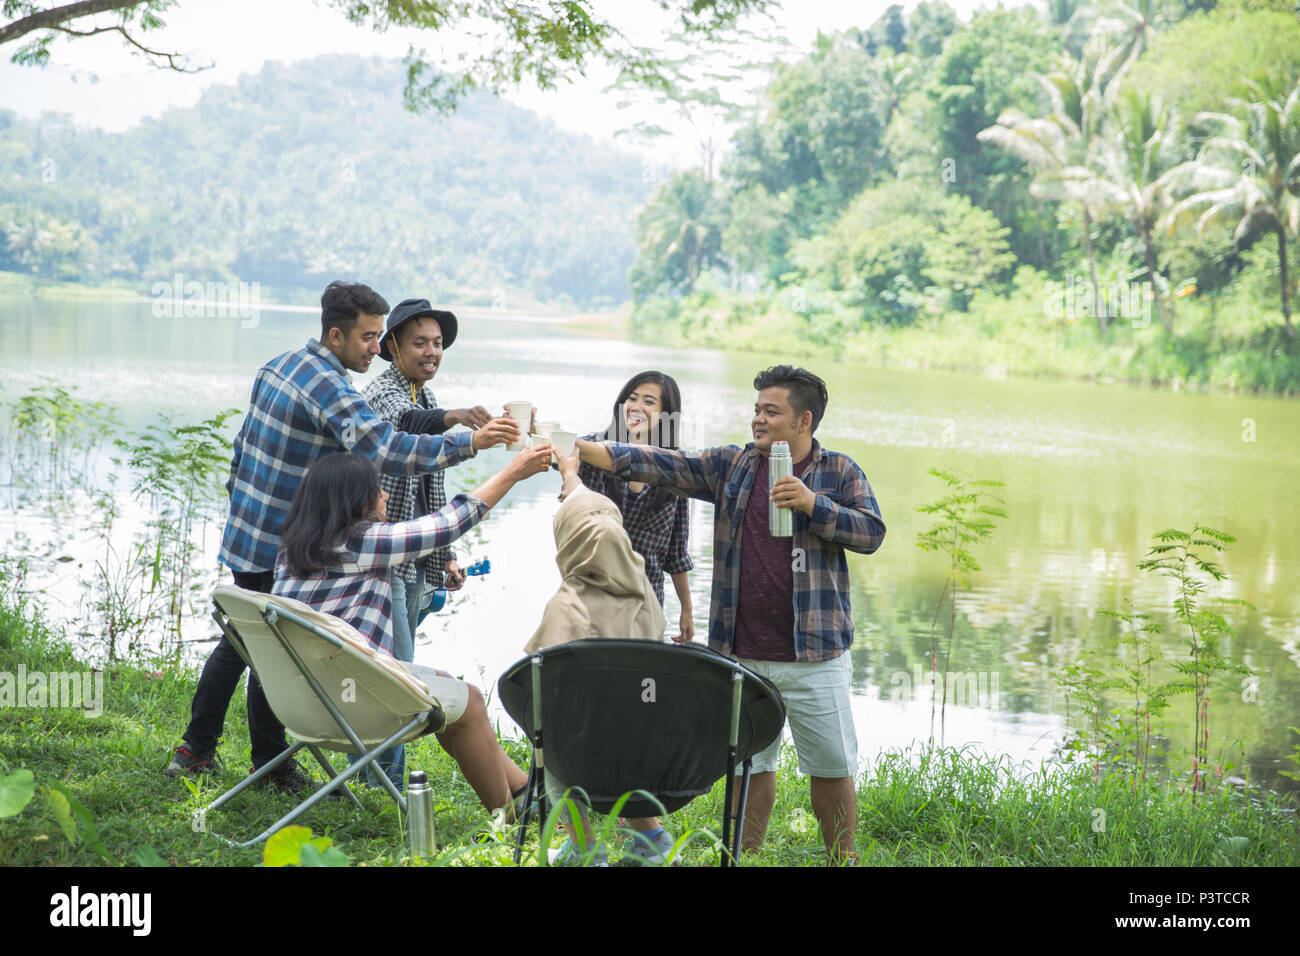 Friendship Hangout Traveling Destination. glass cheers - Stock Image